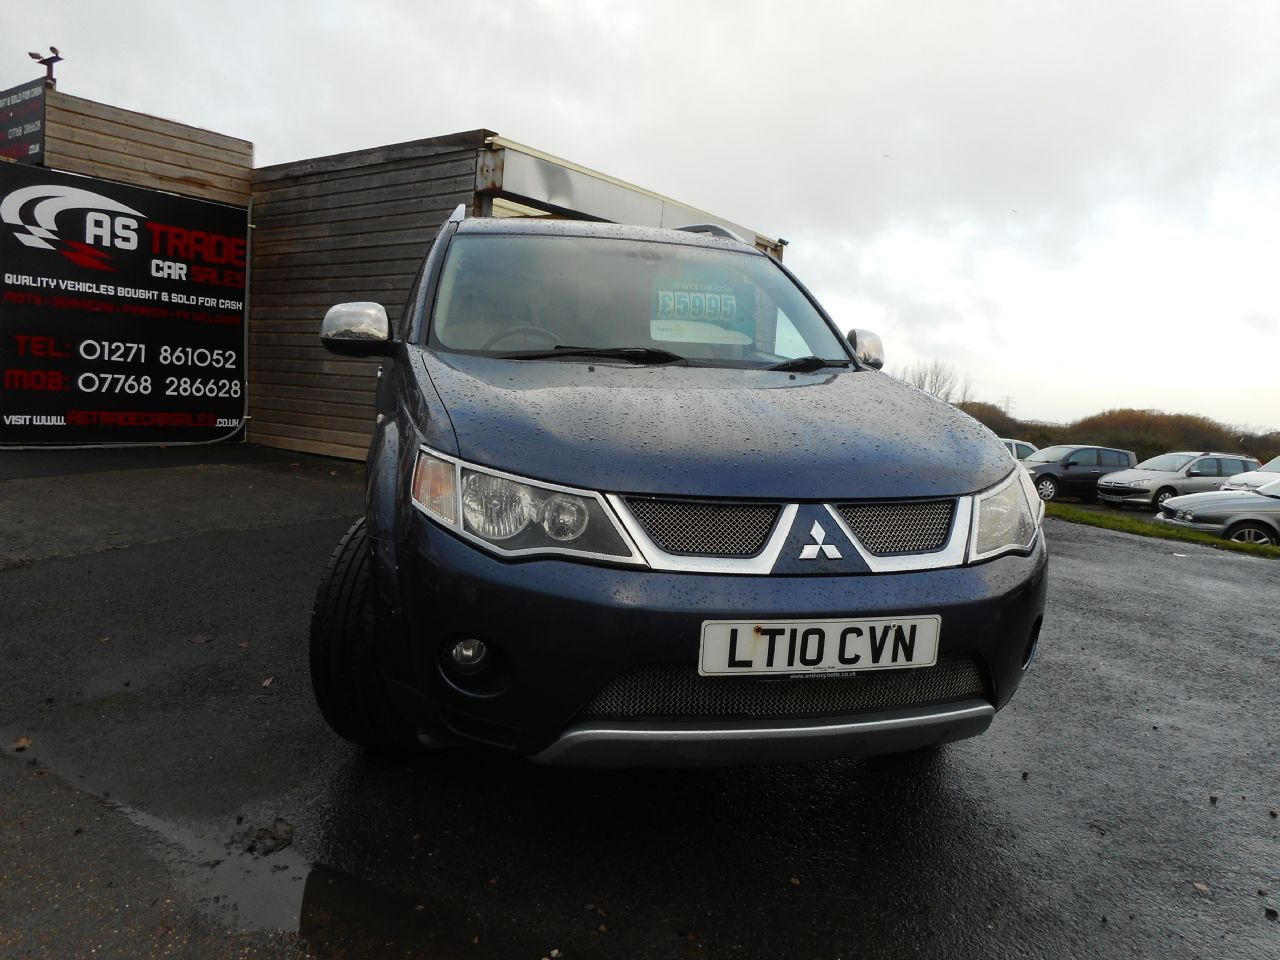 MITSUBISHIOUTLANDER  II DIESELESTATE - 2.2 DI-DC DIAMOND 5DR for sale